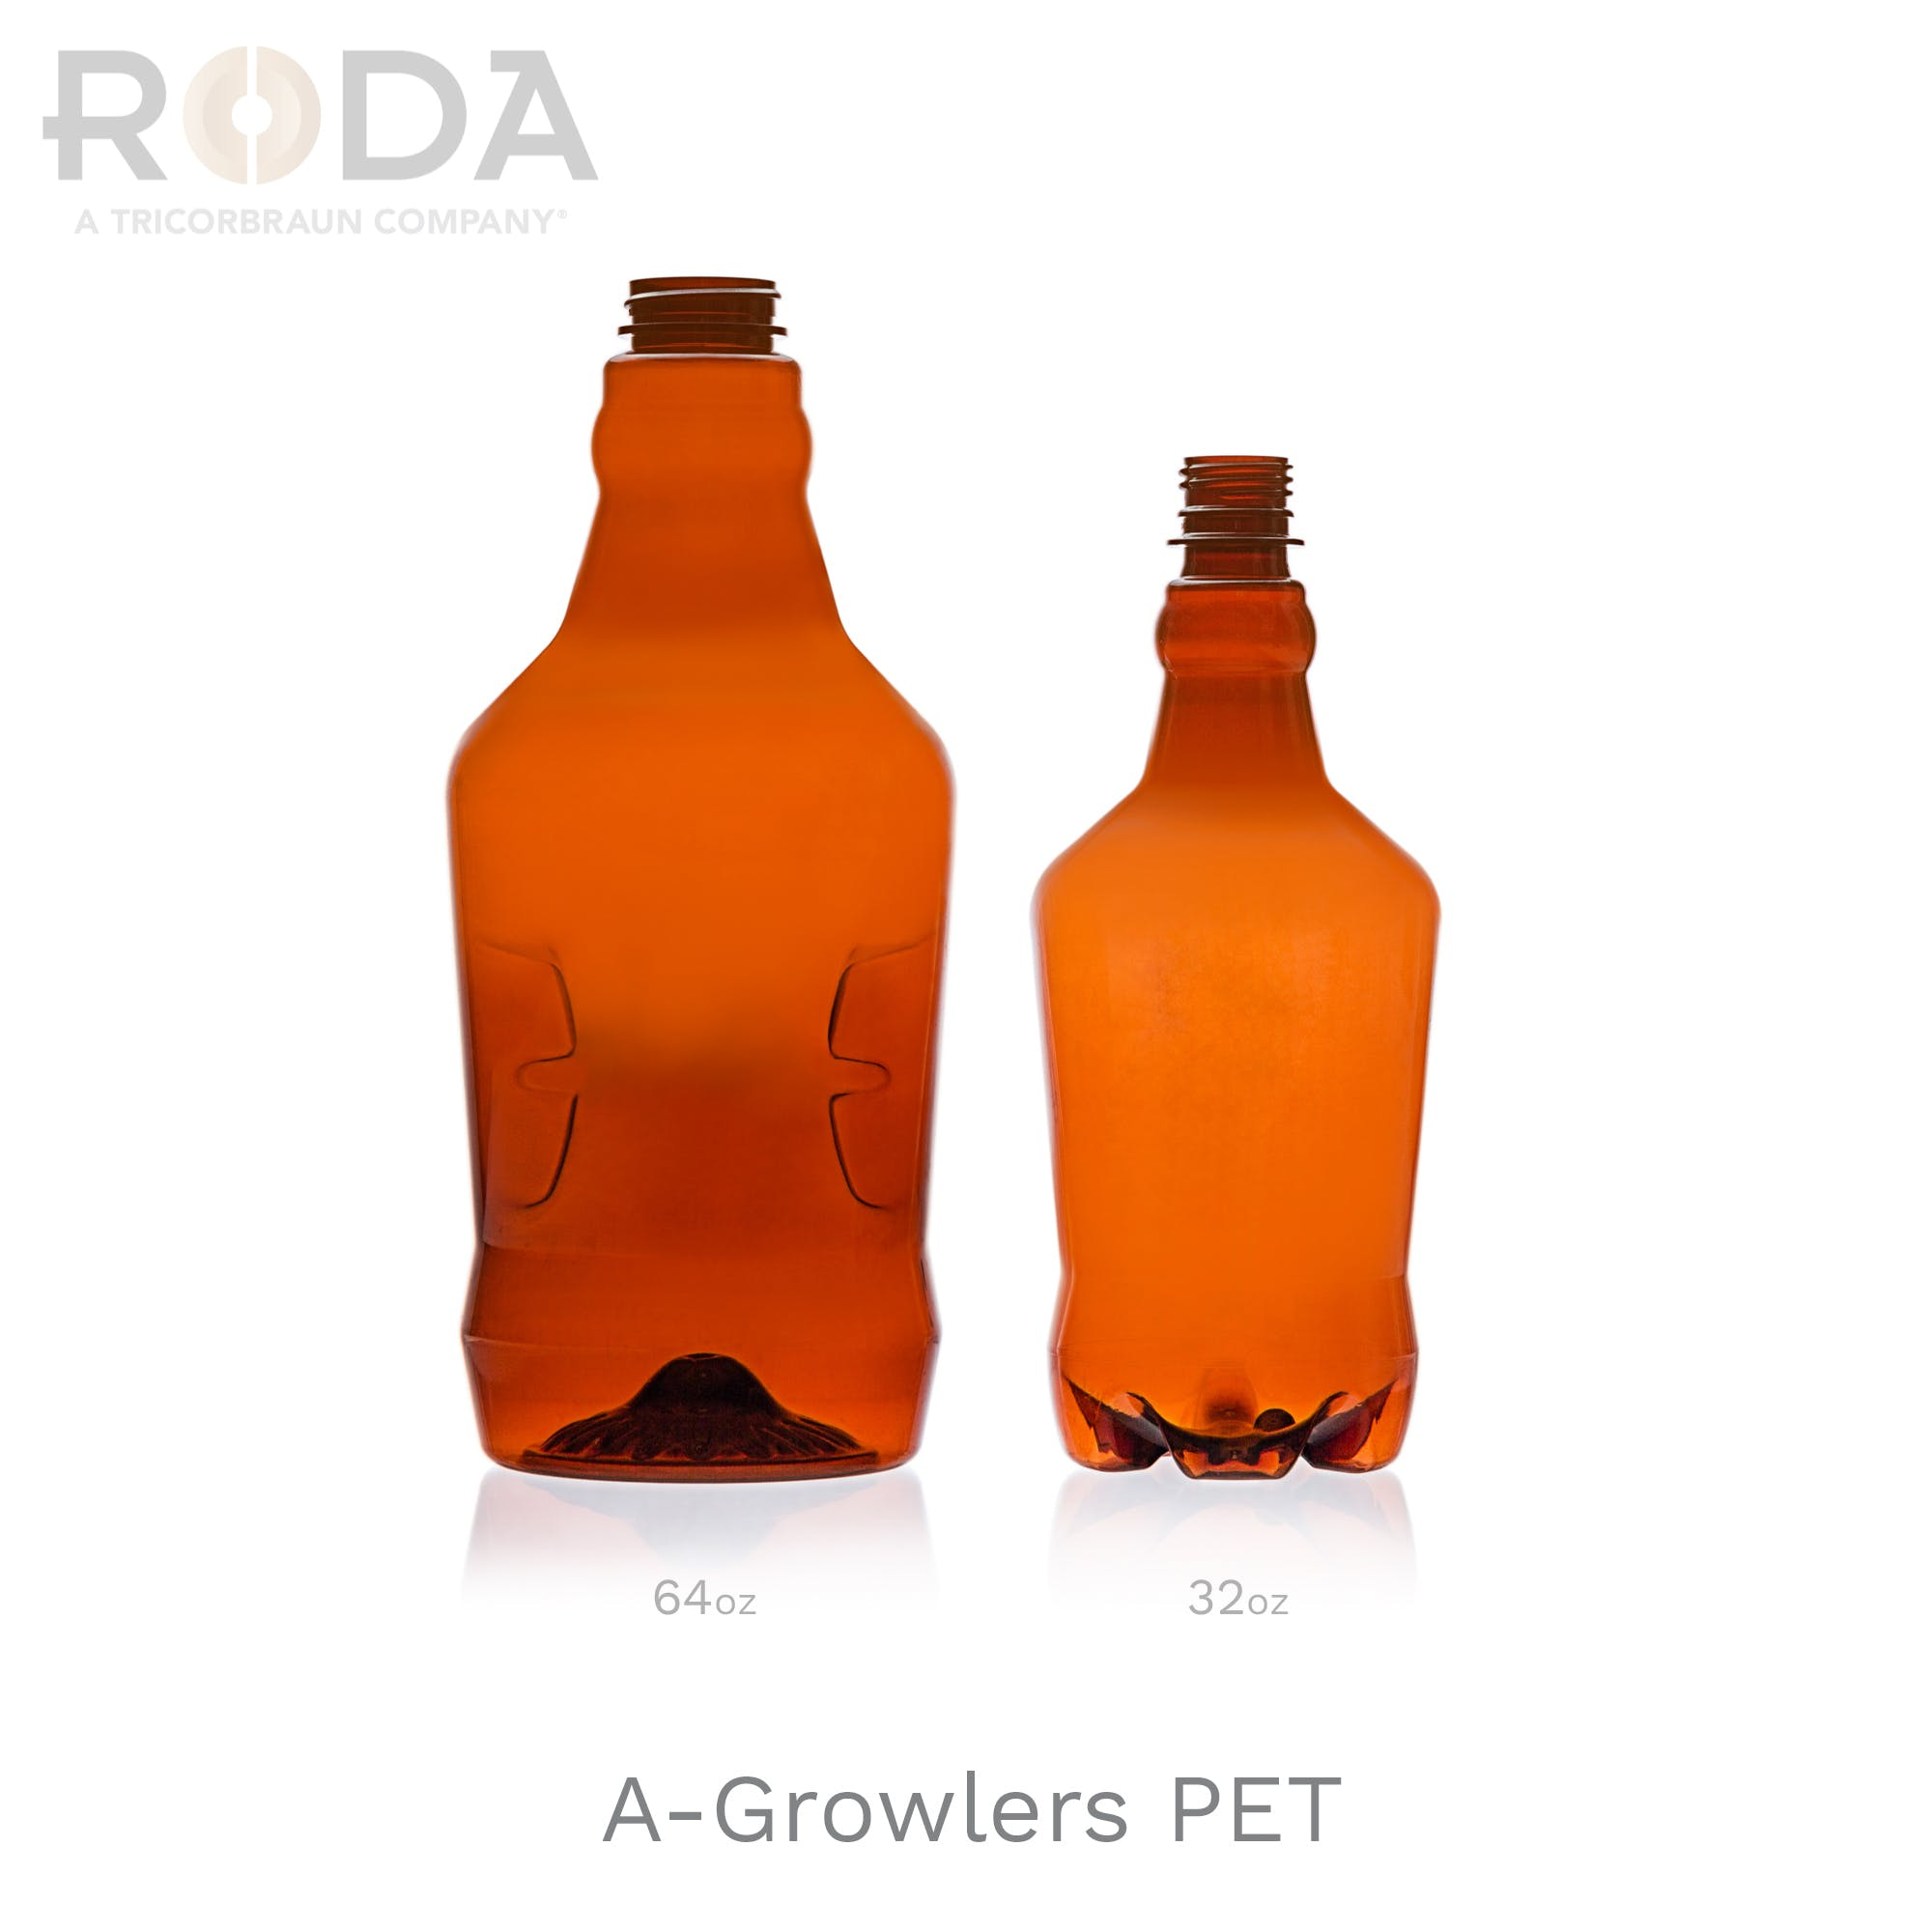 A-Growlers PET